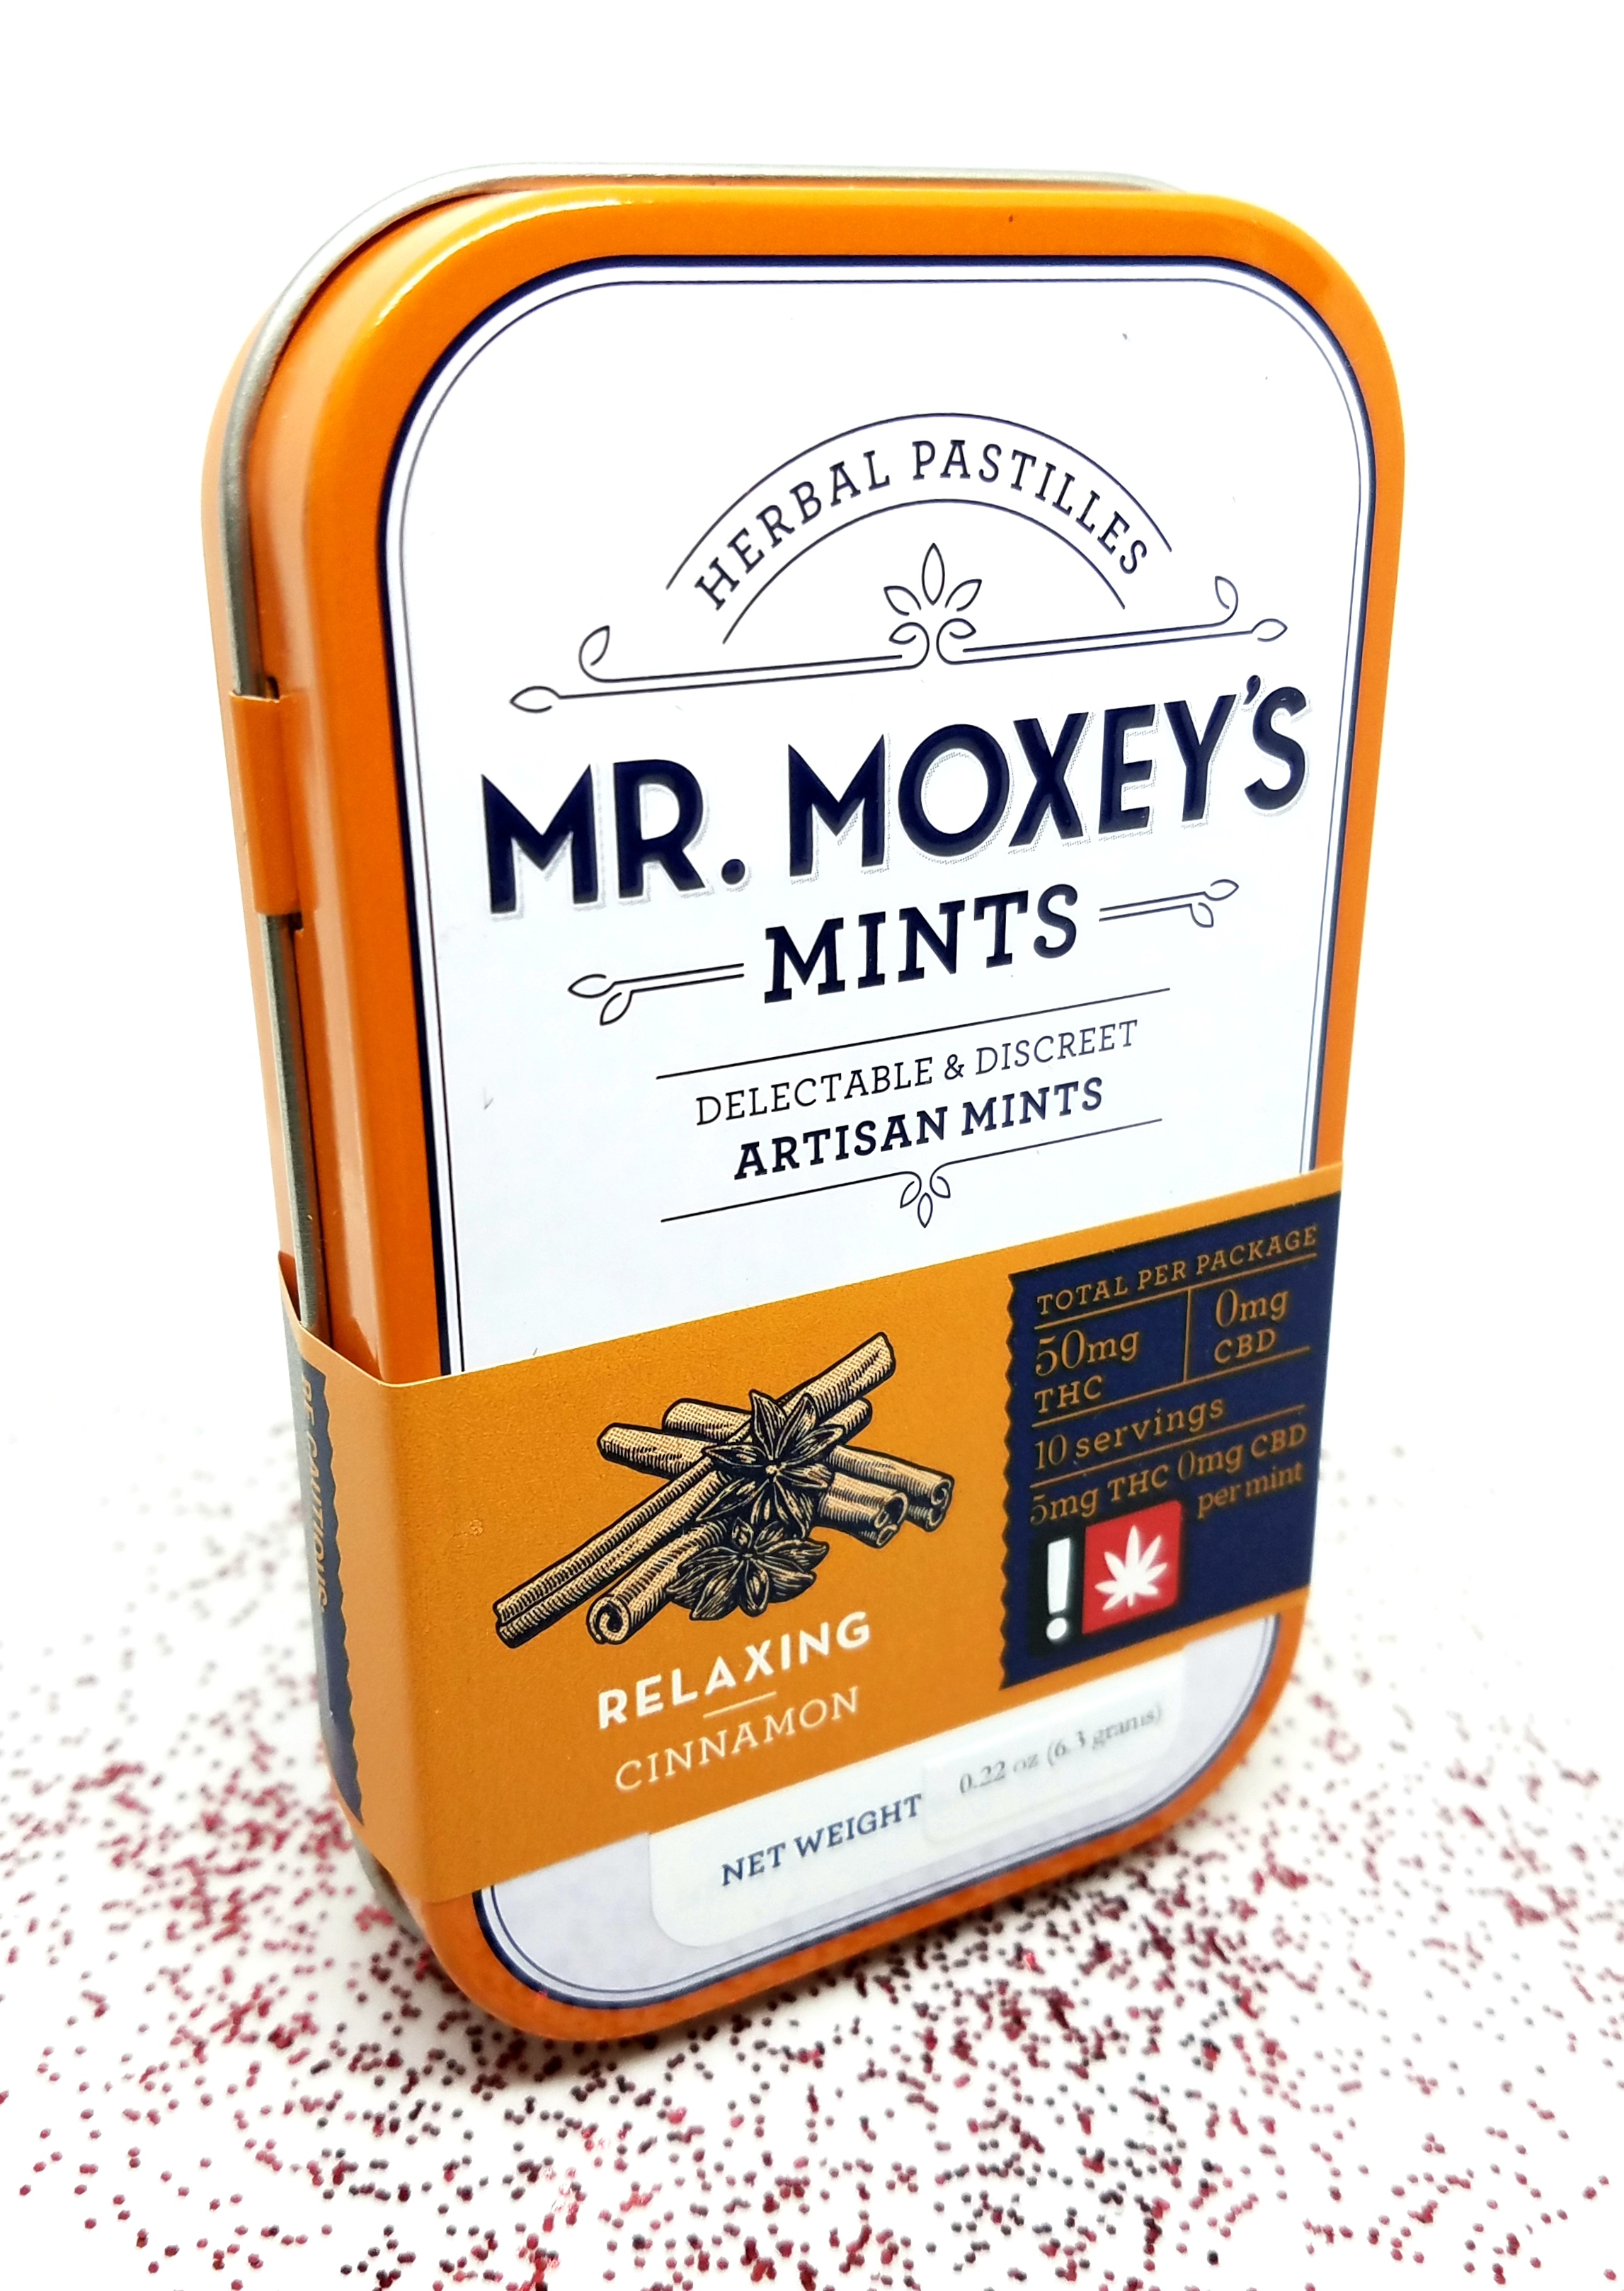 Cinnamon Mints made by Mr. Moxey's Mints